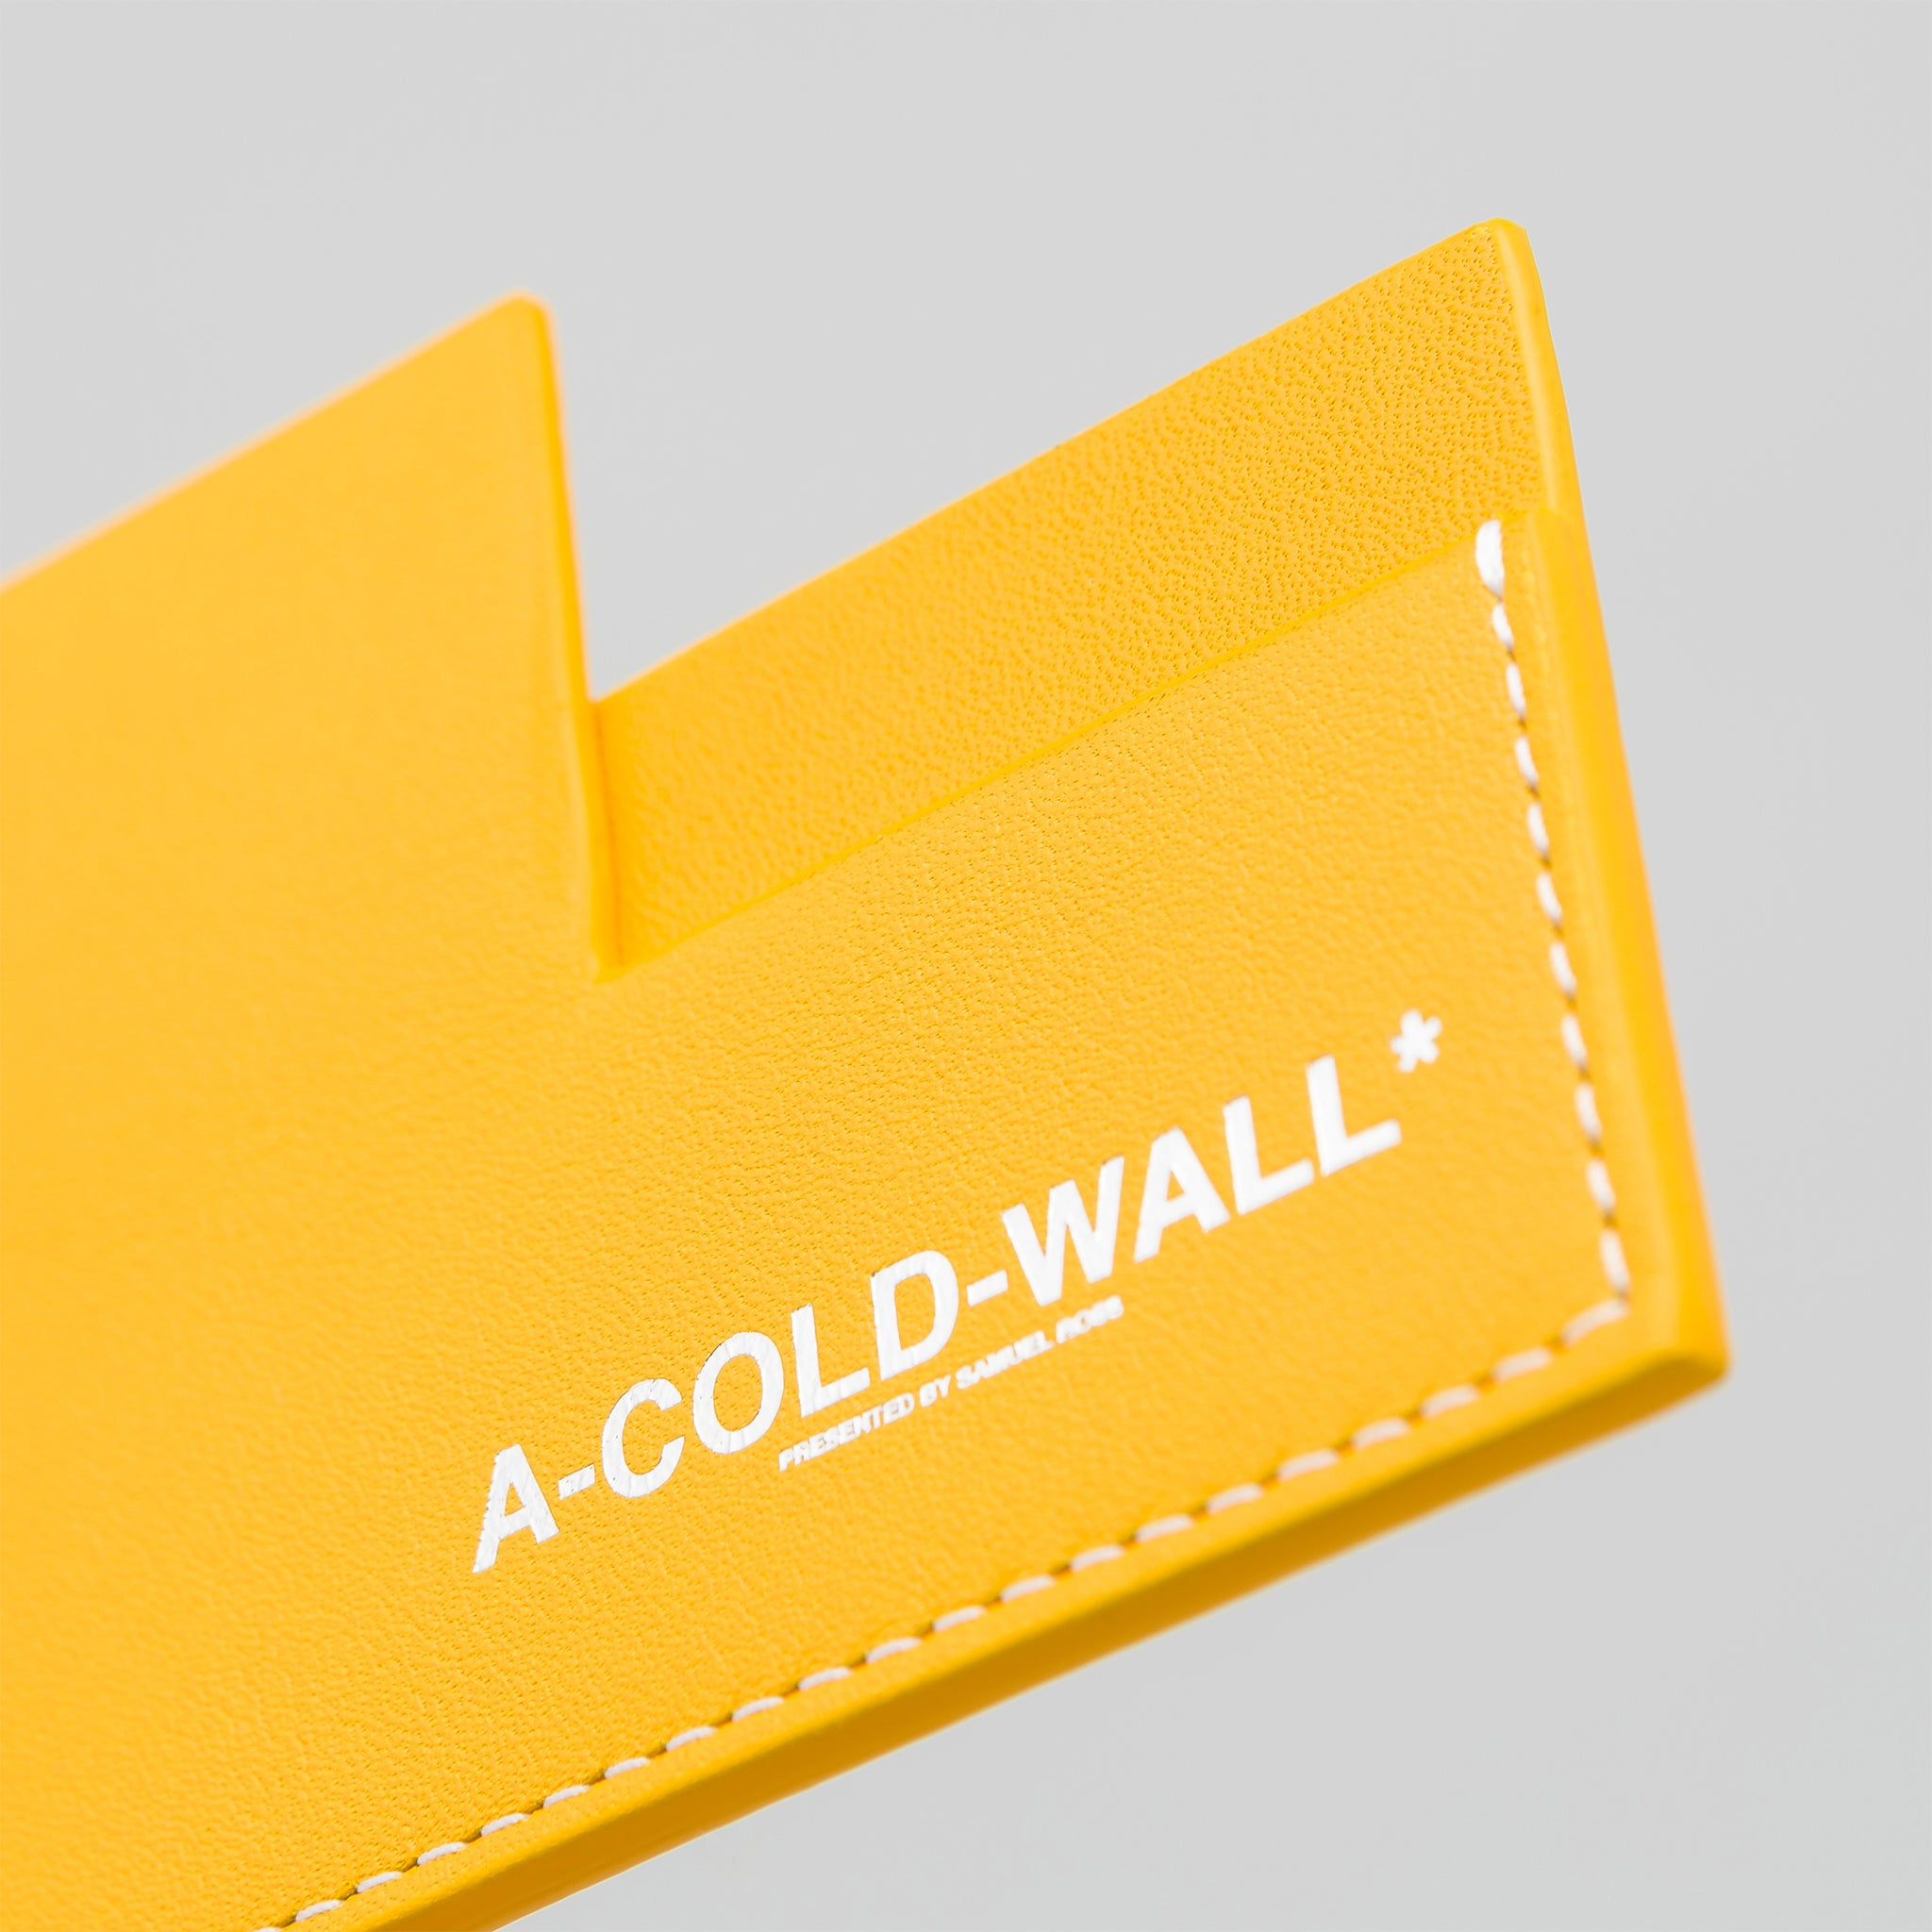 Right Angle Cardholder in Amber